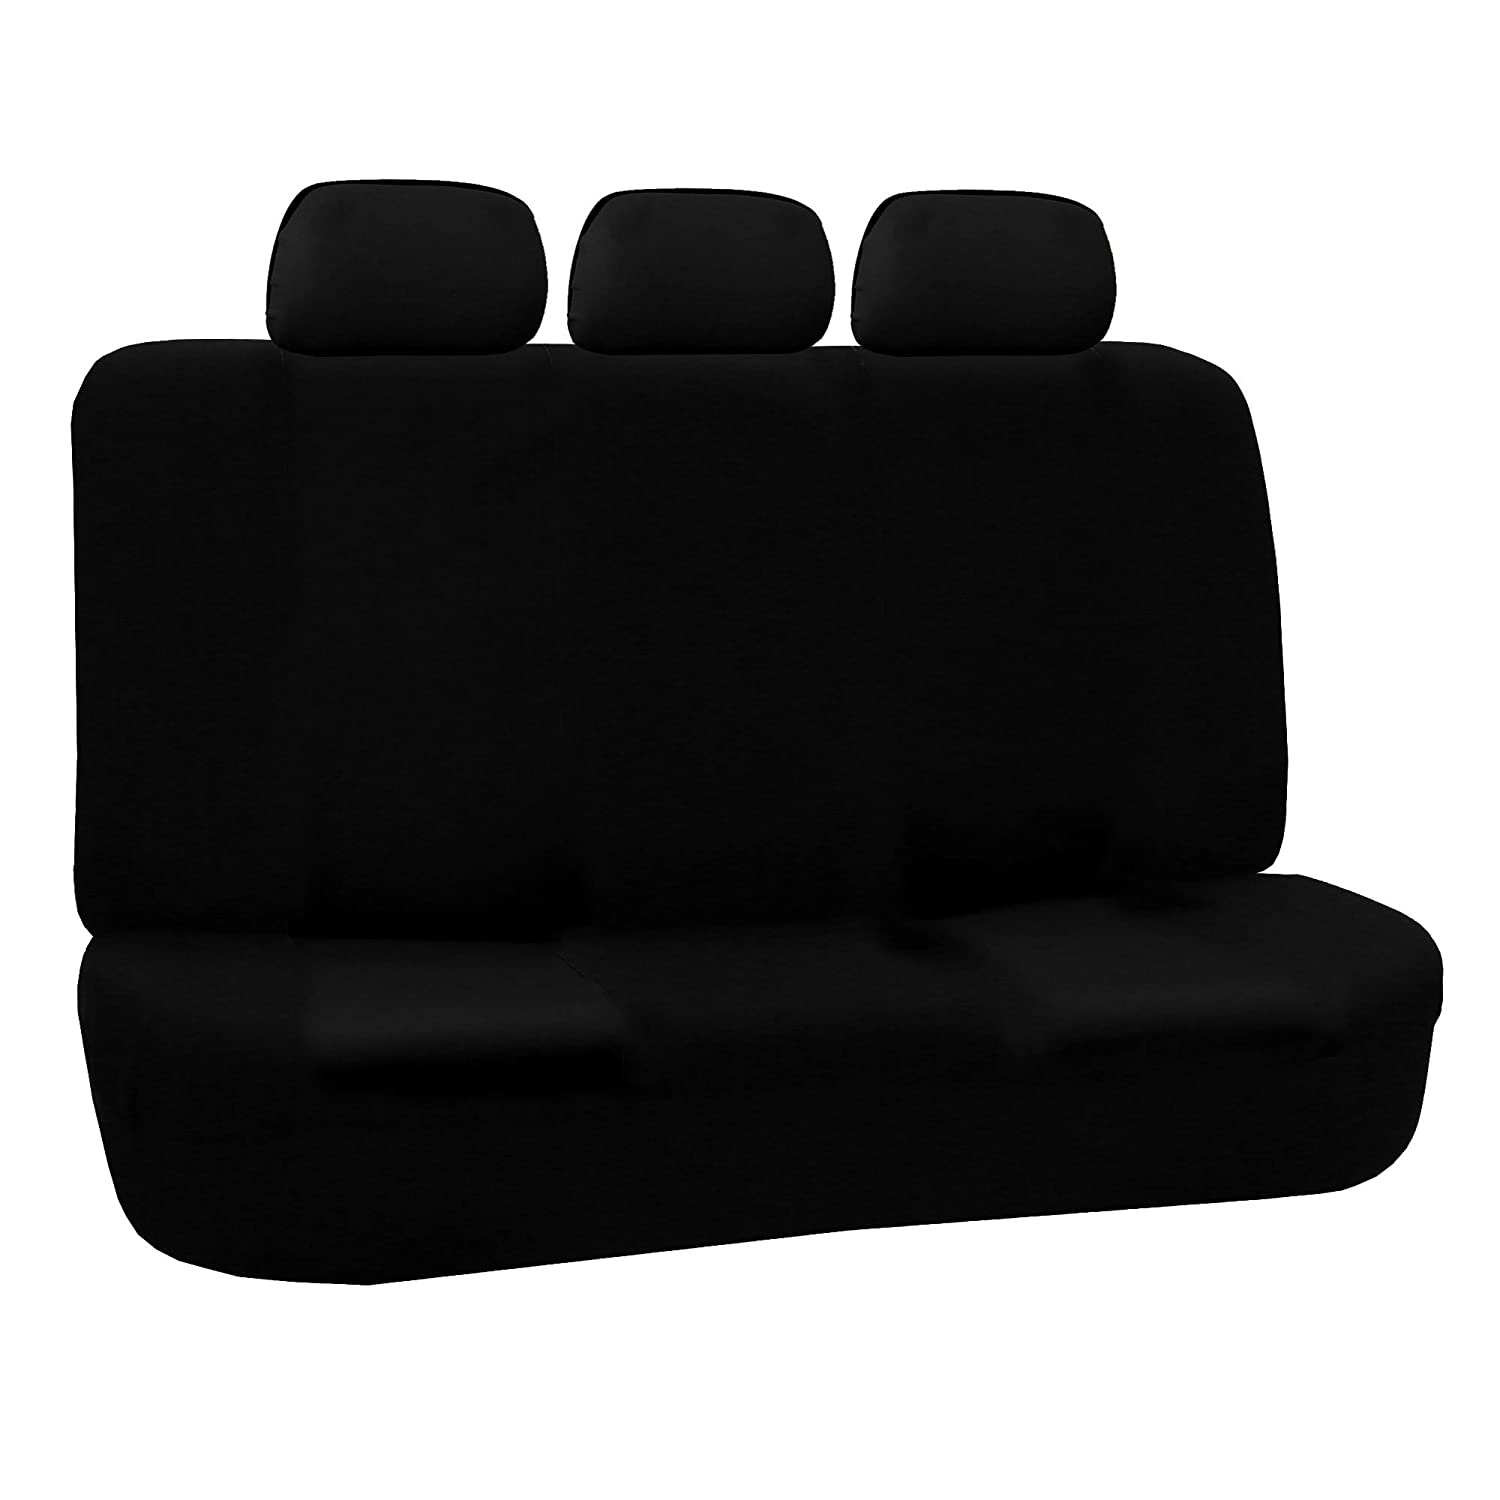 Amazon FH GROUP FB051R013 Universall Bench Seat Cover 40 60 Split And 50 Black Fit Most Car Truck Suv Or Van Automotive